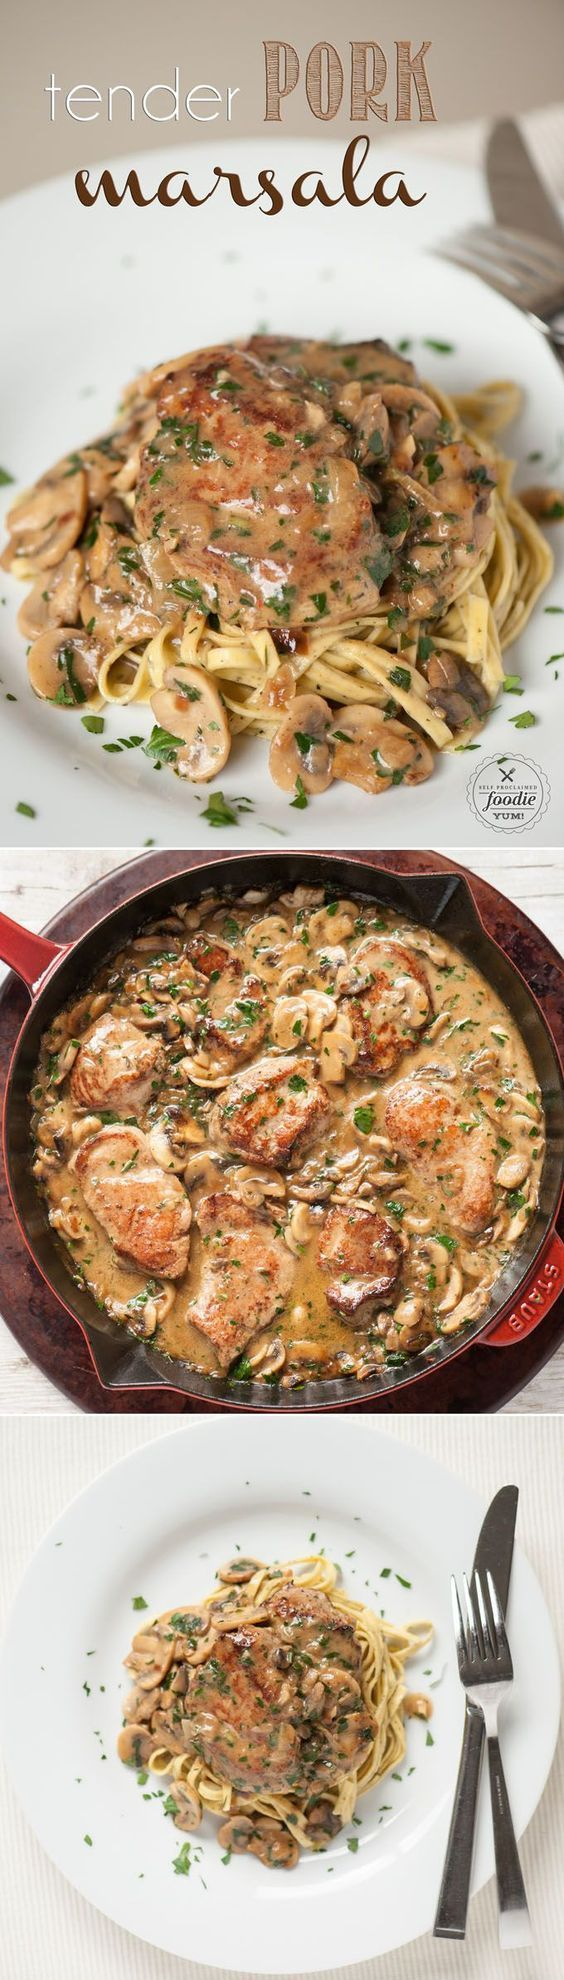 Ready in just 30 minutes, Tender Pork Marsala made with marinated pork tenderloin smothered in a mushroom wine sauce, is perfect for any night of the week. #ad